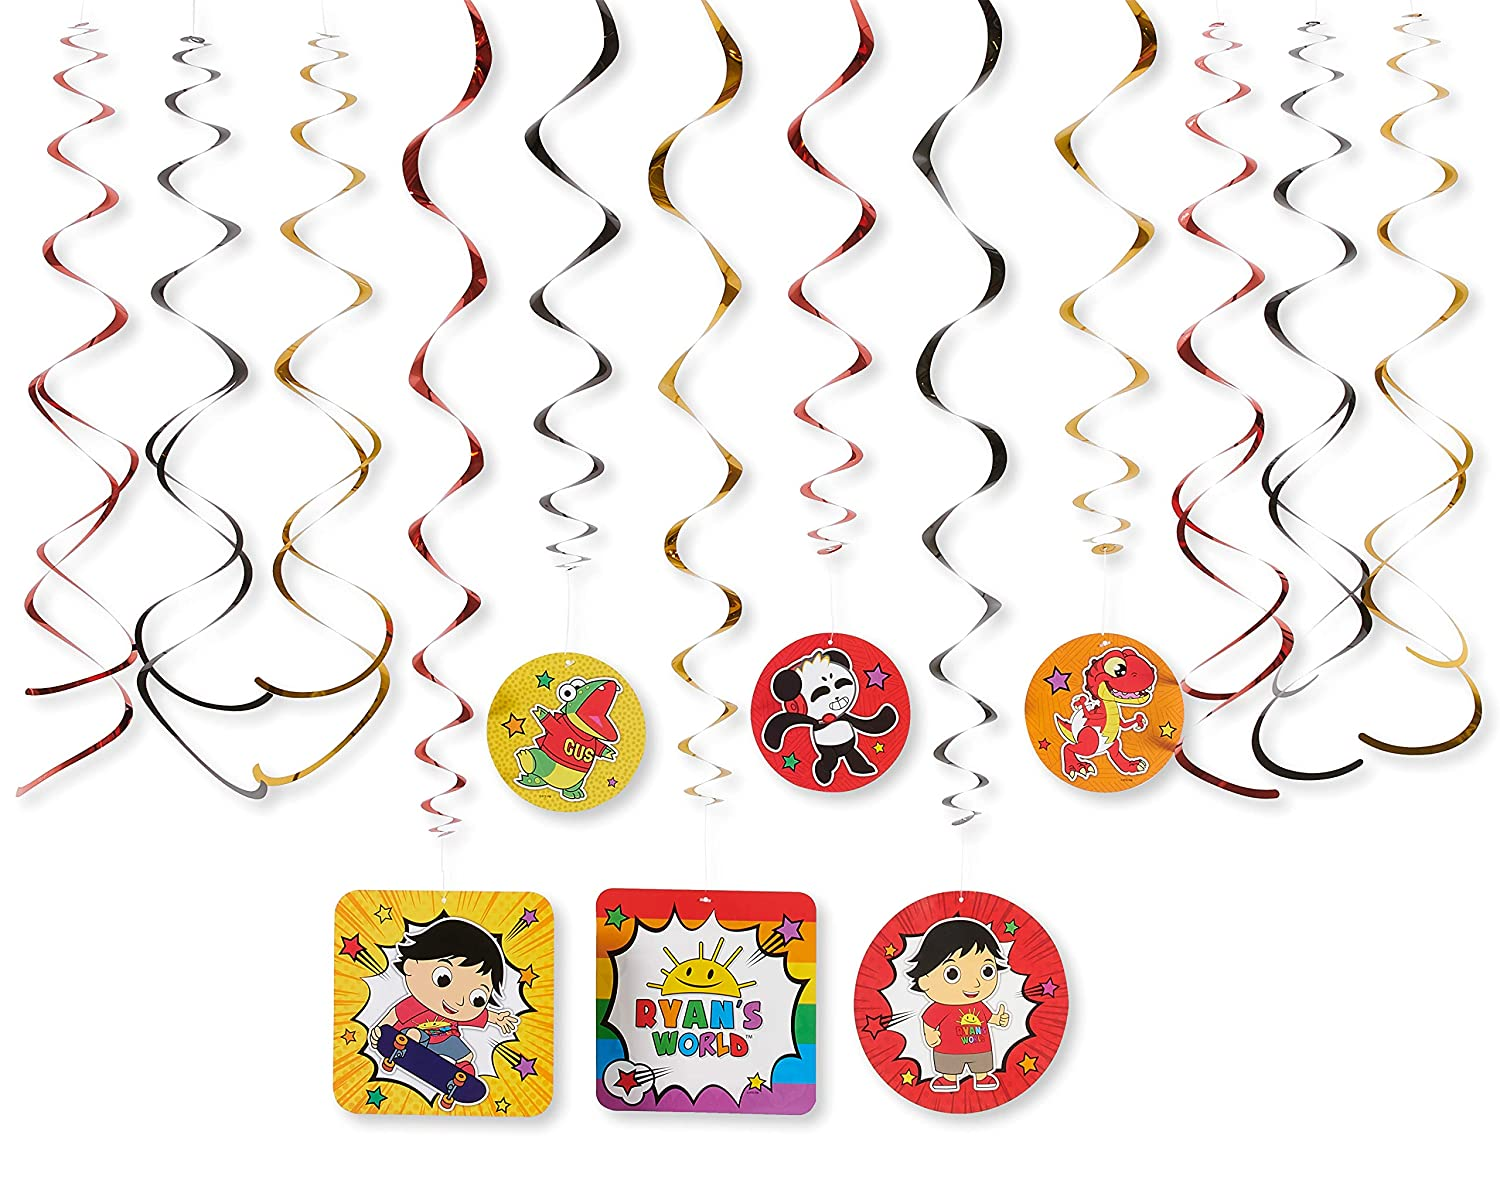 Dinner Paper Plates American Greetings Ryans World Party Supplies 36-Count